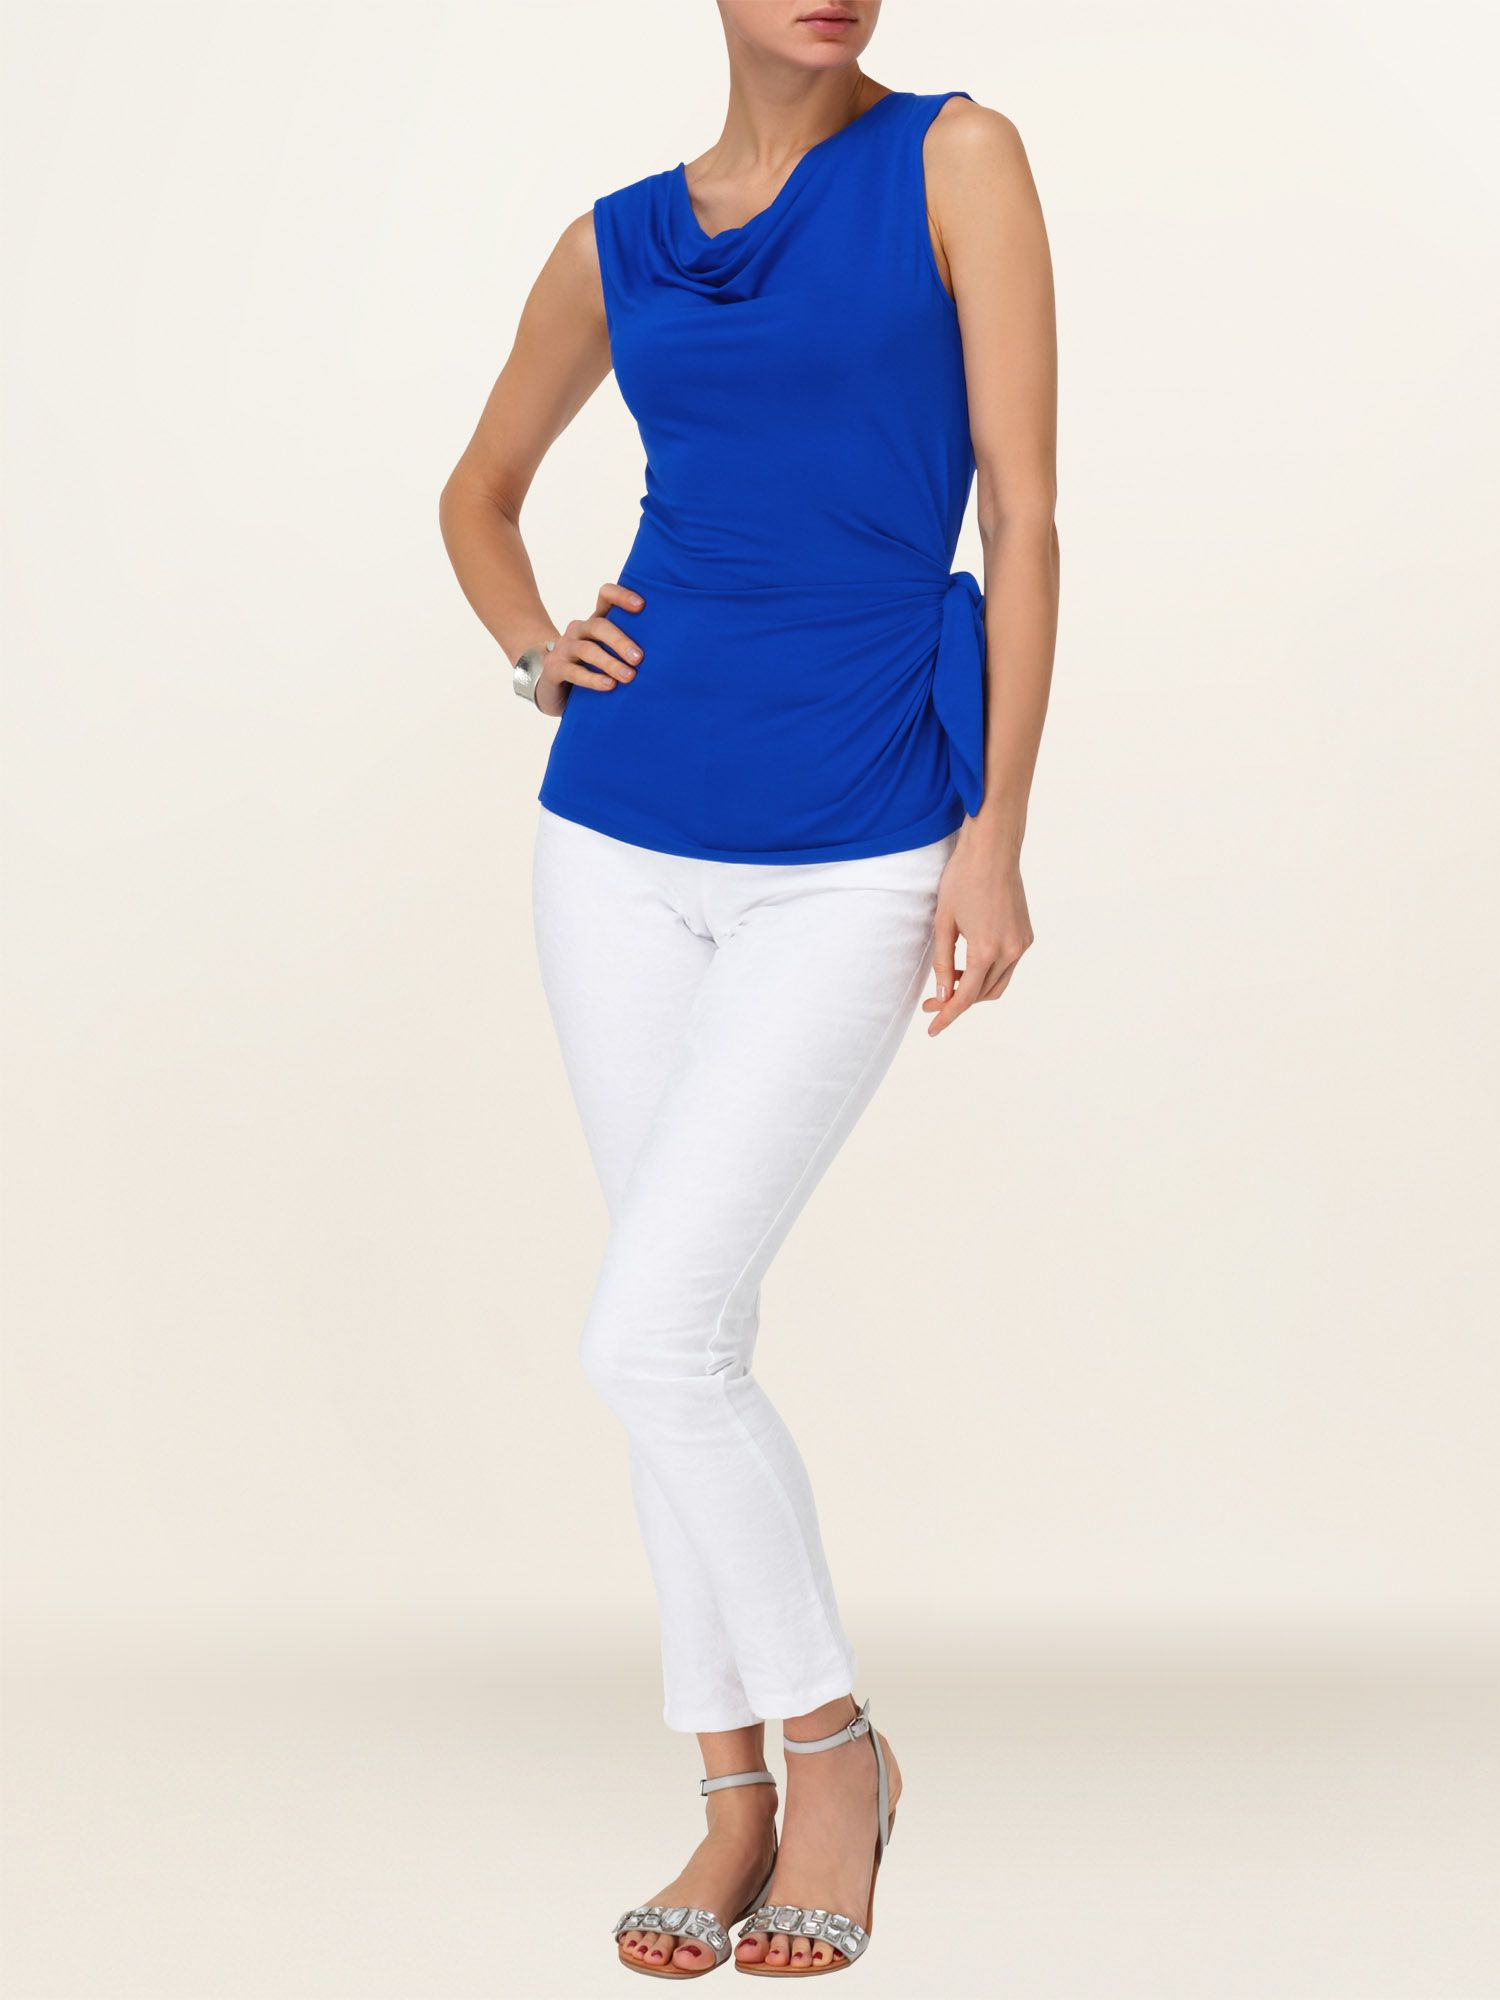 Debbie plain top